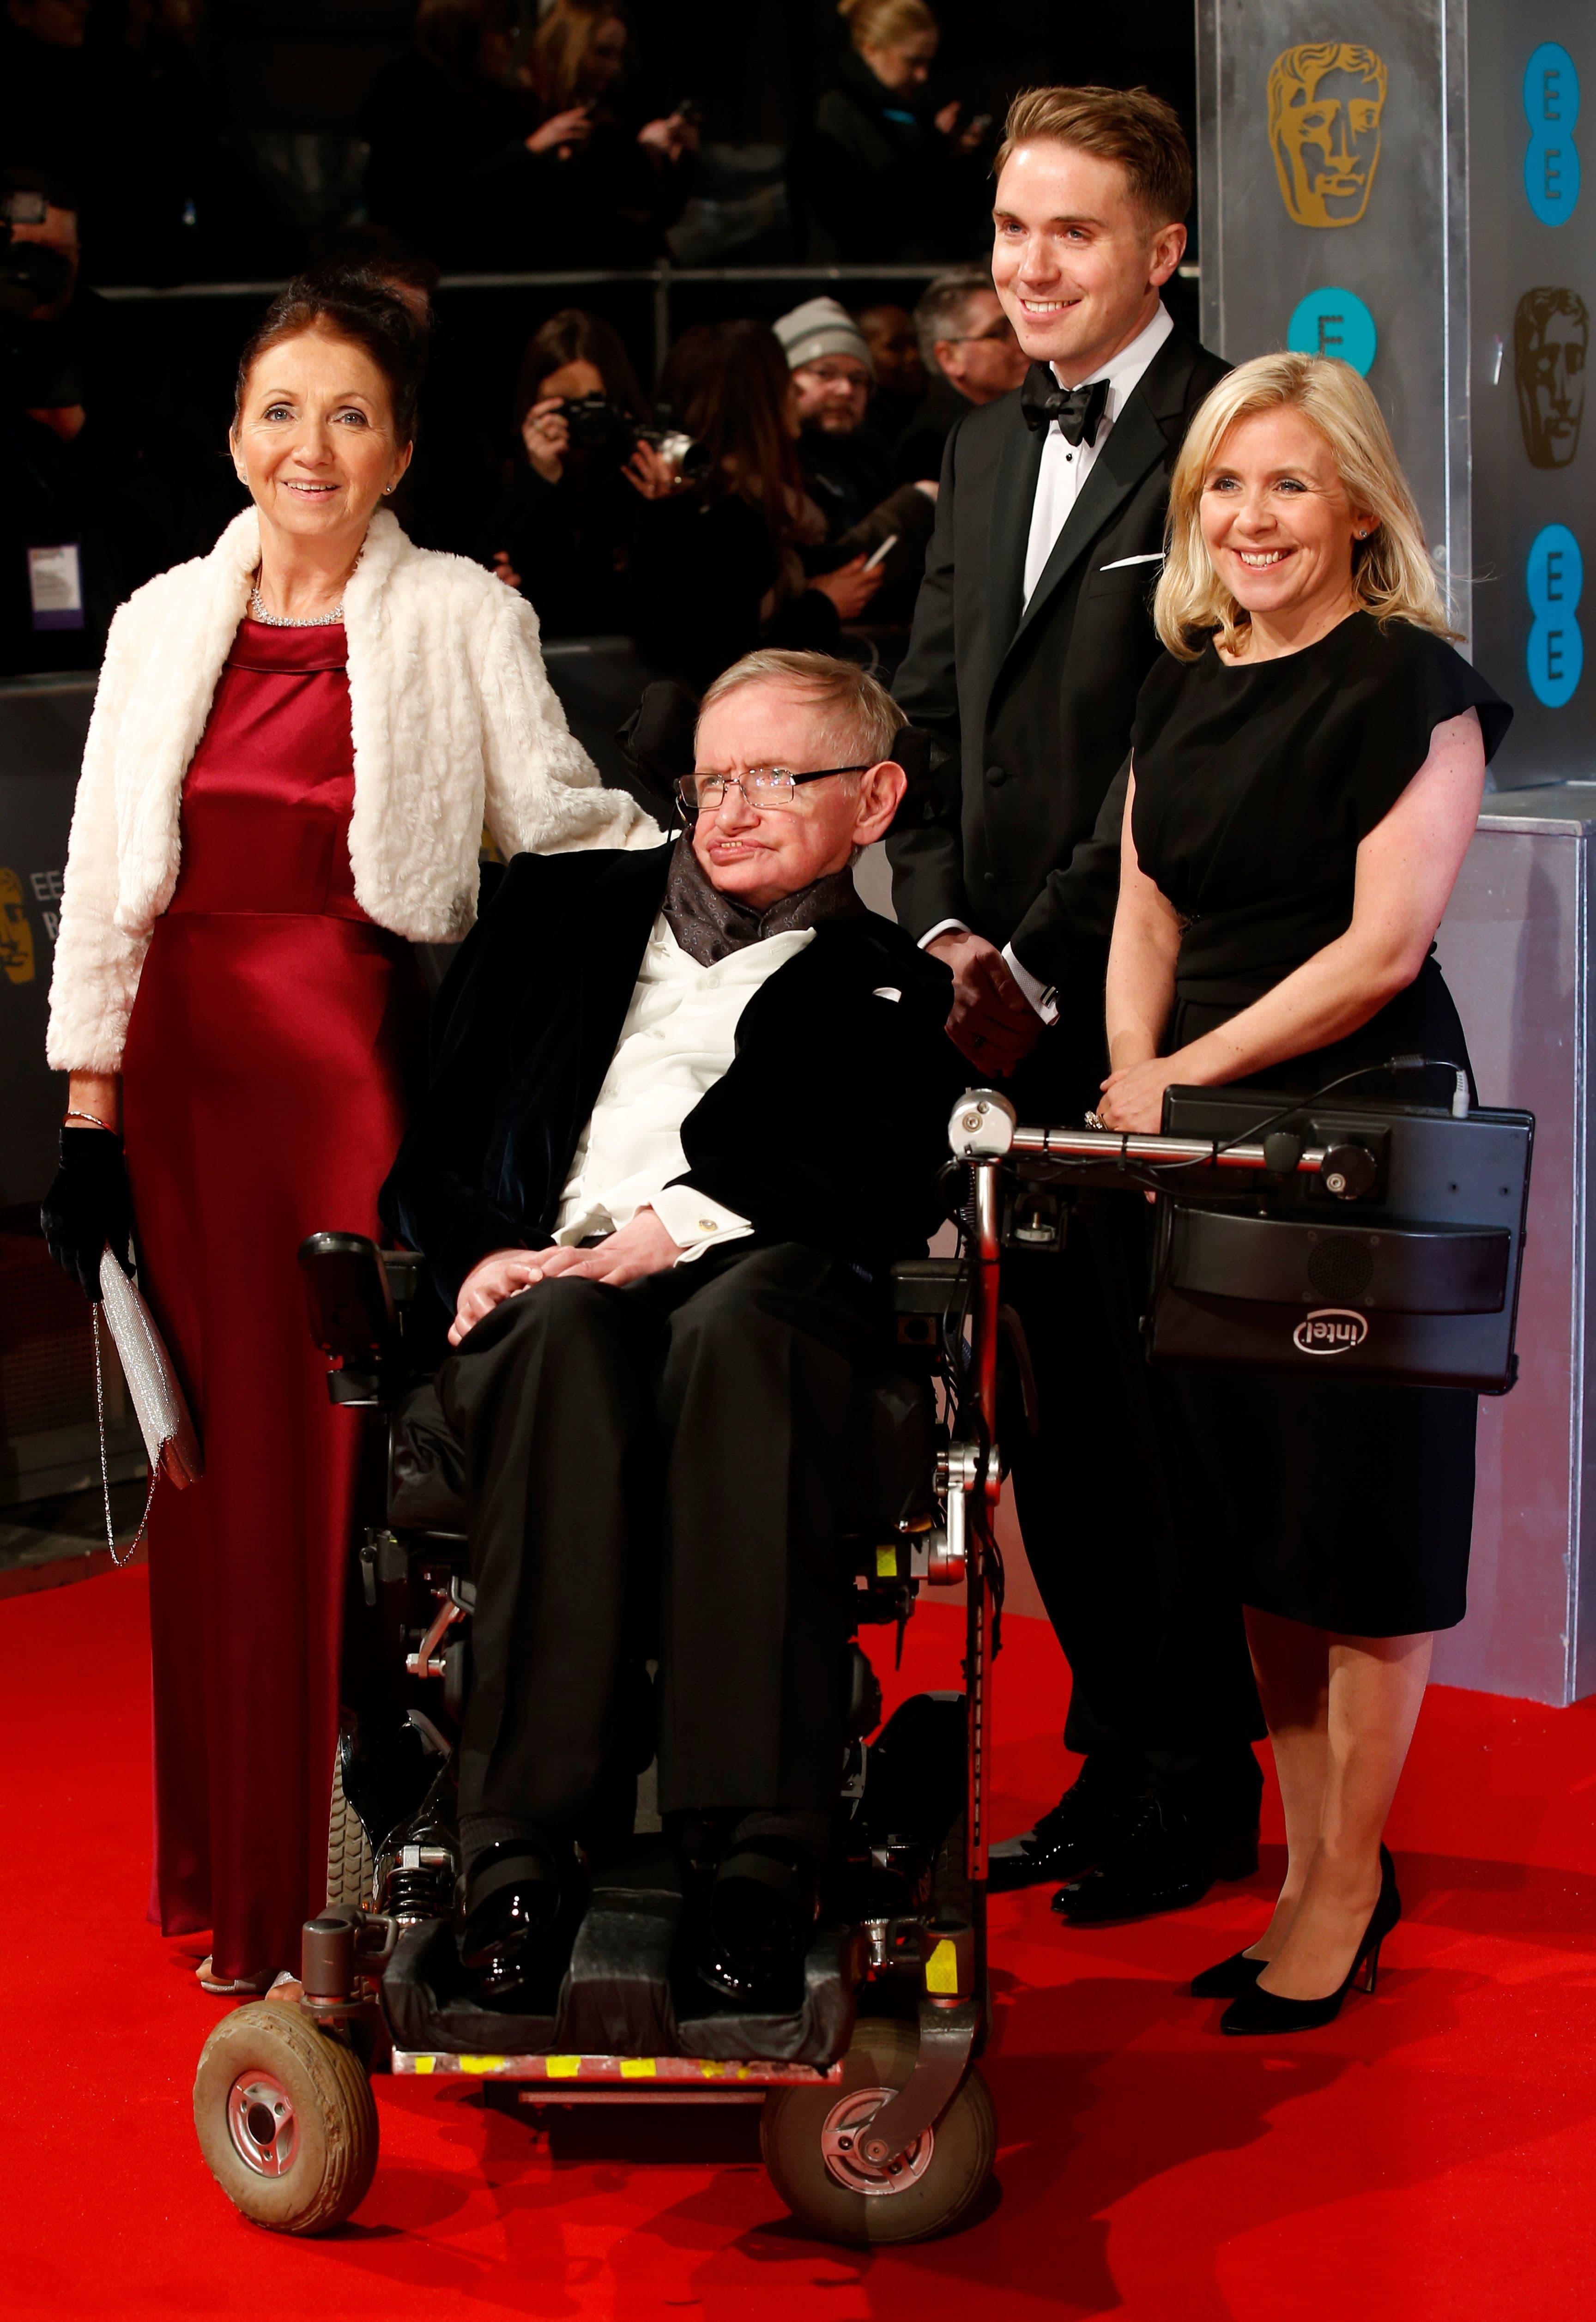 Hawking arrives on the red carpet with former wife Jane Hawking (L) and daughter Lucy Hawking (R) for the BAFTA British Academy Film Awards at the Royal Opera House in London. A film based on Jane's memoir about Hawking called *The Theory of Everything* was nominated for various awards in 2014. — AFP